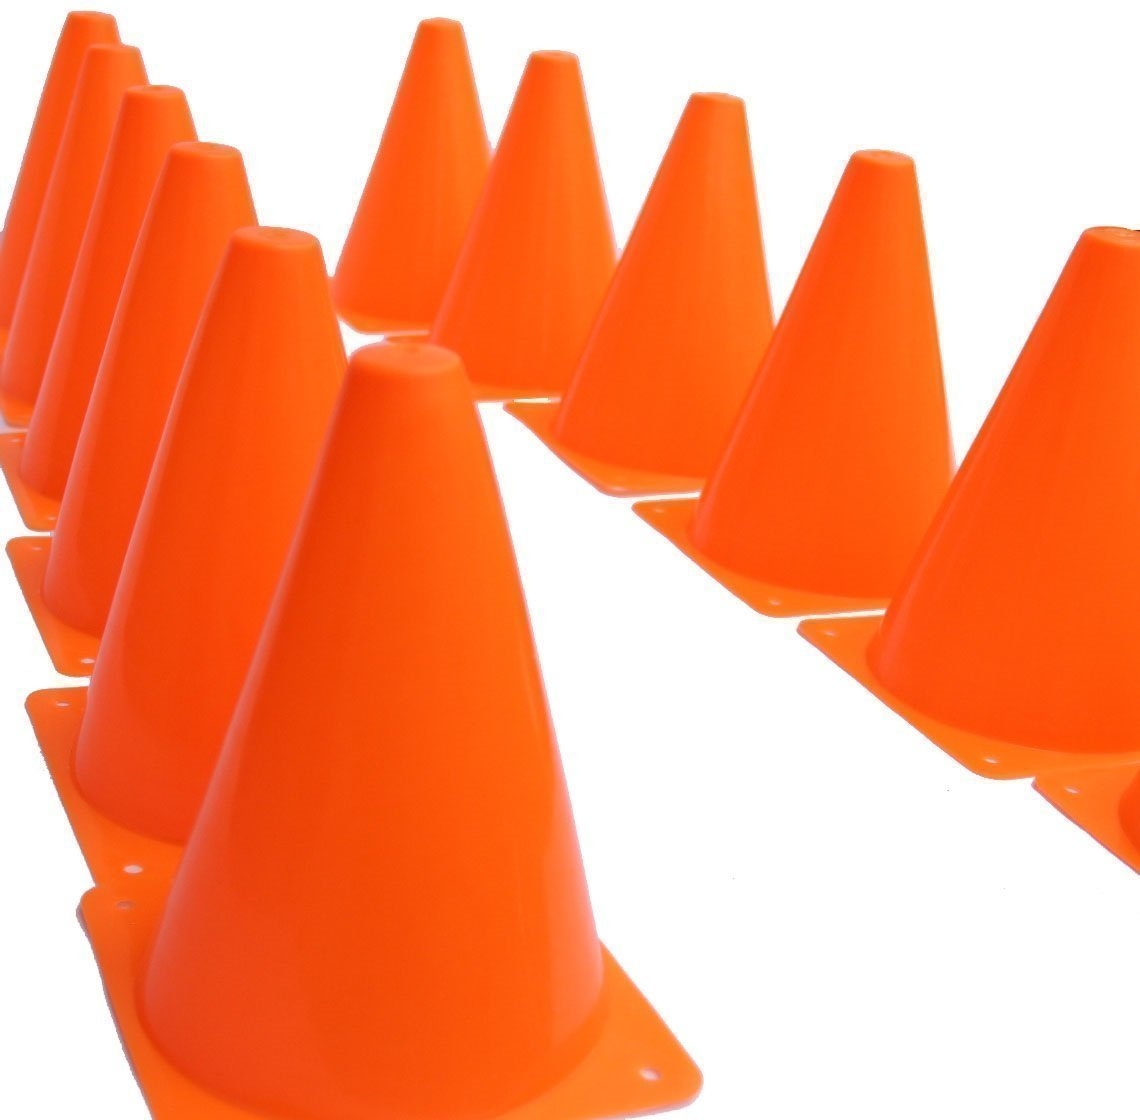 Pack of 12 Multipurpose Construction Theme Party Sports Activity Cones for Kids Outdoor and Indoor Gaming and Festive Events Kayco USA Kidsco Traffic Cones Plastic 8 Inches